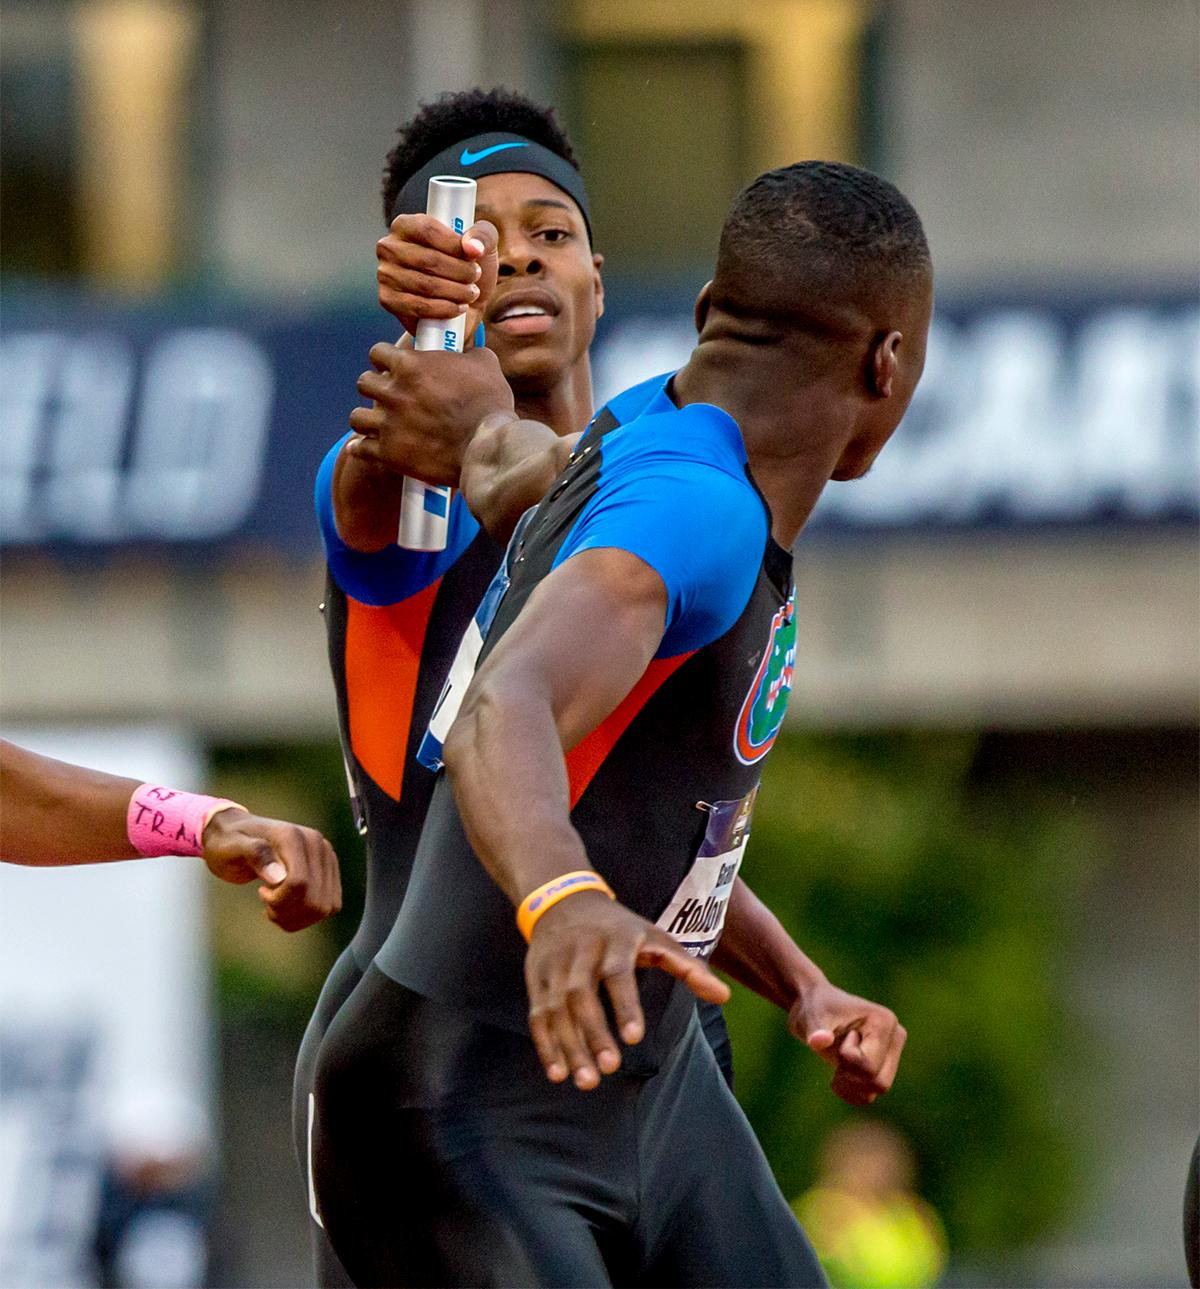 Florida's TJ Holmes hands the baton off to his teammate Grant Holloway. Florida would place third overall in the semi-finals with a time of 3:03.38. Photo by August Frank, Oregon News Lab